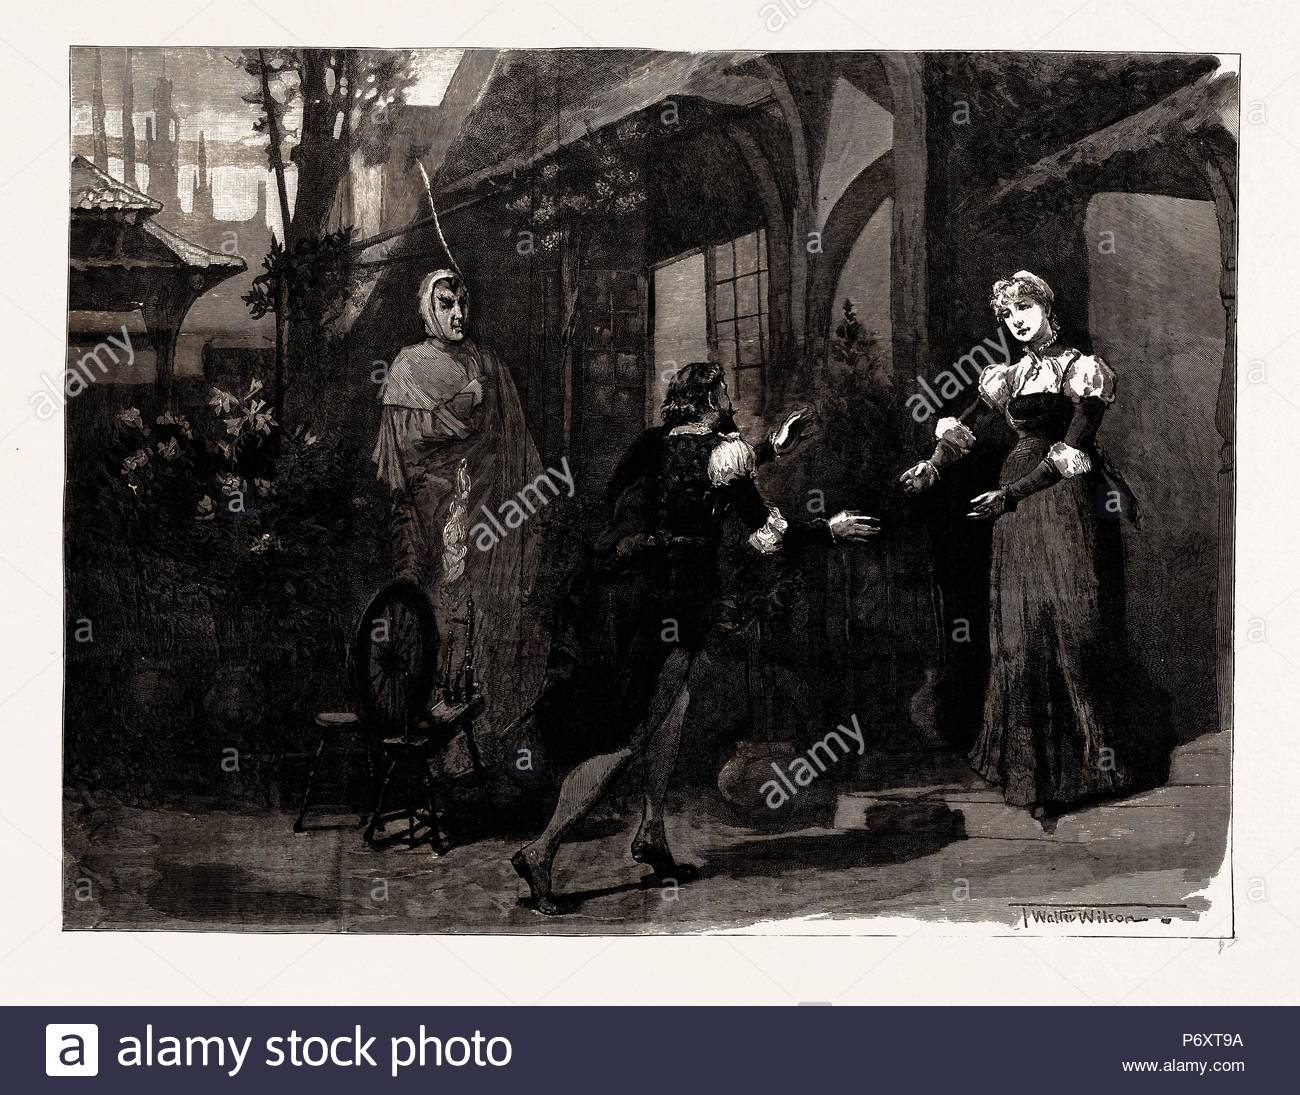 'FAUST', AT THE LYCEUM THEATRE, Mephistopheles (Mr. Irving): 'Pretty to see young lovers play with crime.' ACT II., Scene 6, LONDON, UK, 1886. - Stock Image